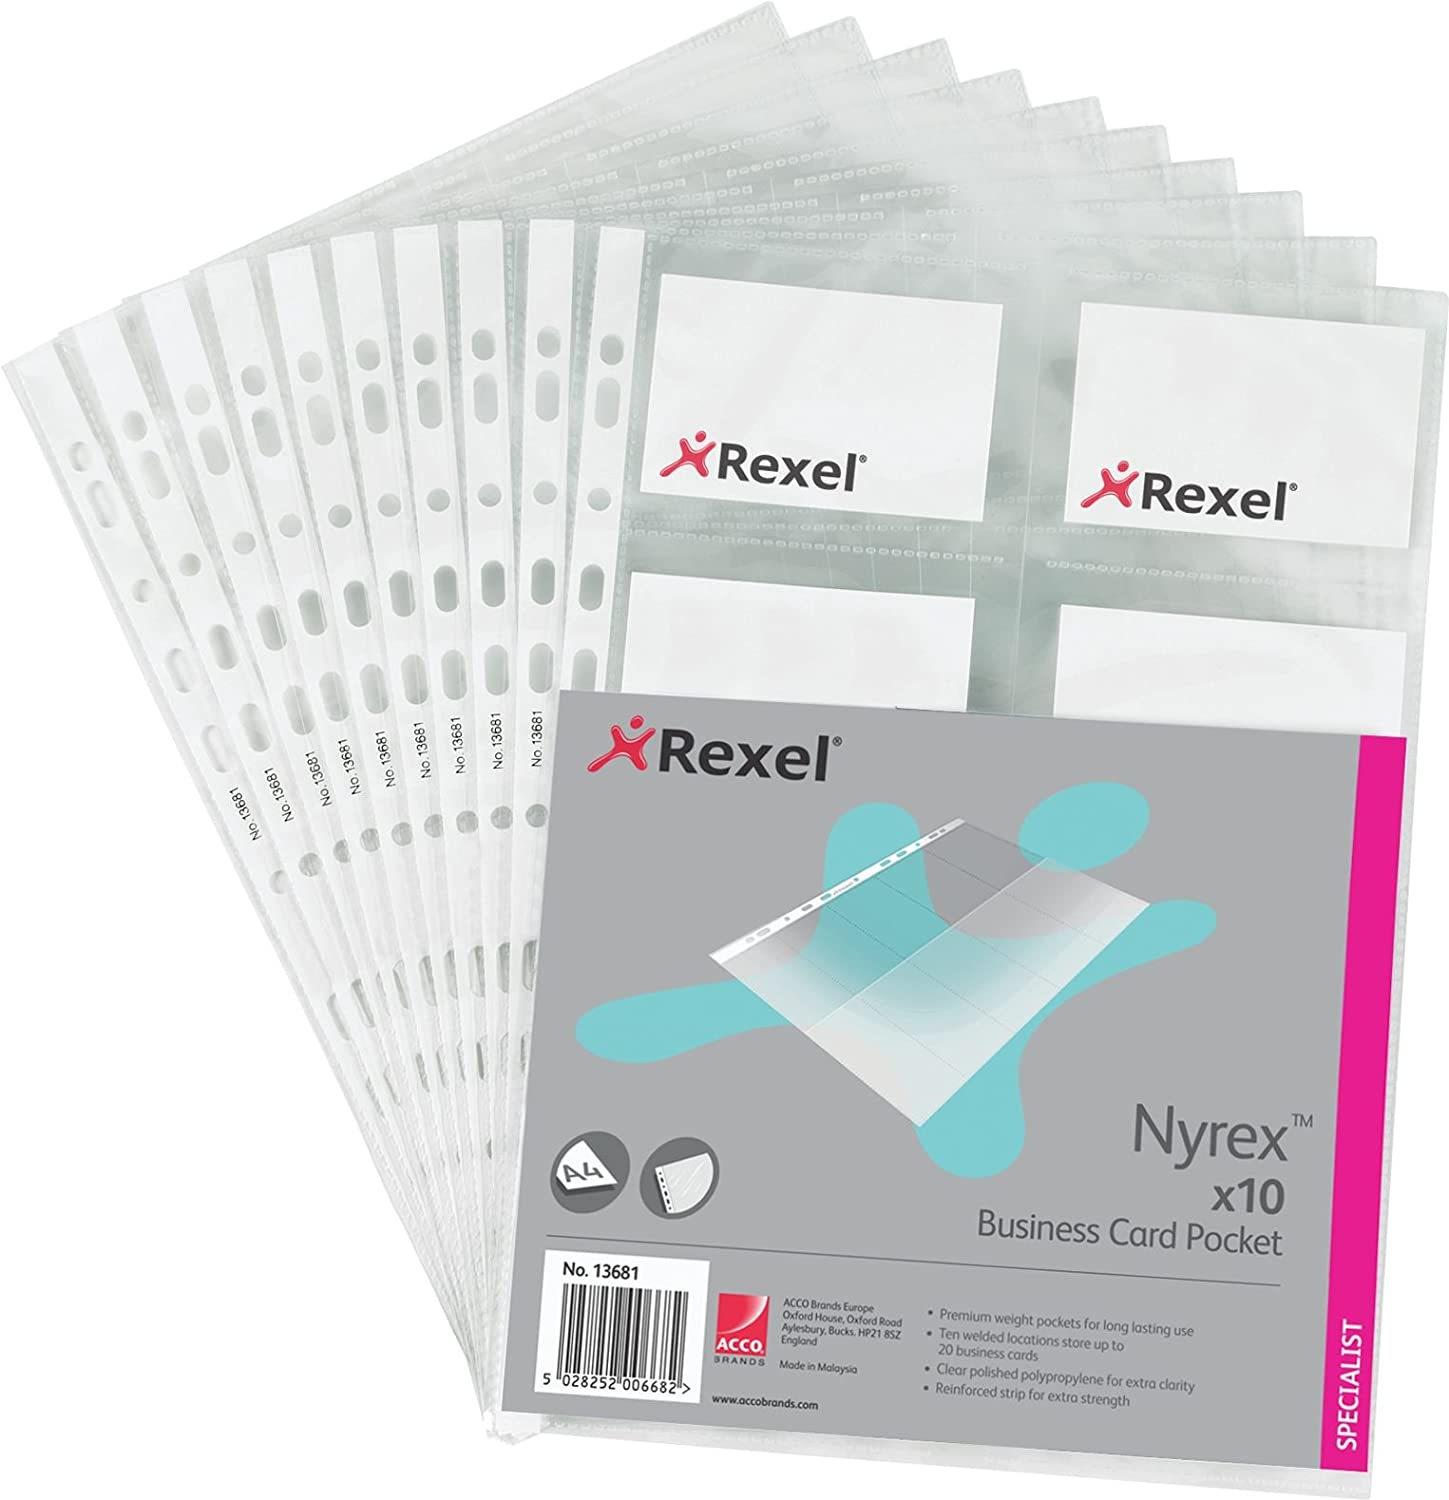 Rexel nyrex business card pockets for 20 cards a4 clear 10 pack rexel nyrex business card pockets for 20 cards a4 clear 10 pack amazon office products colourmoves